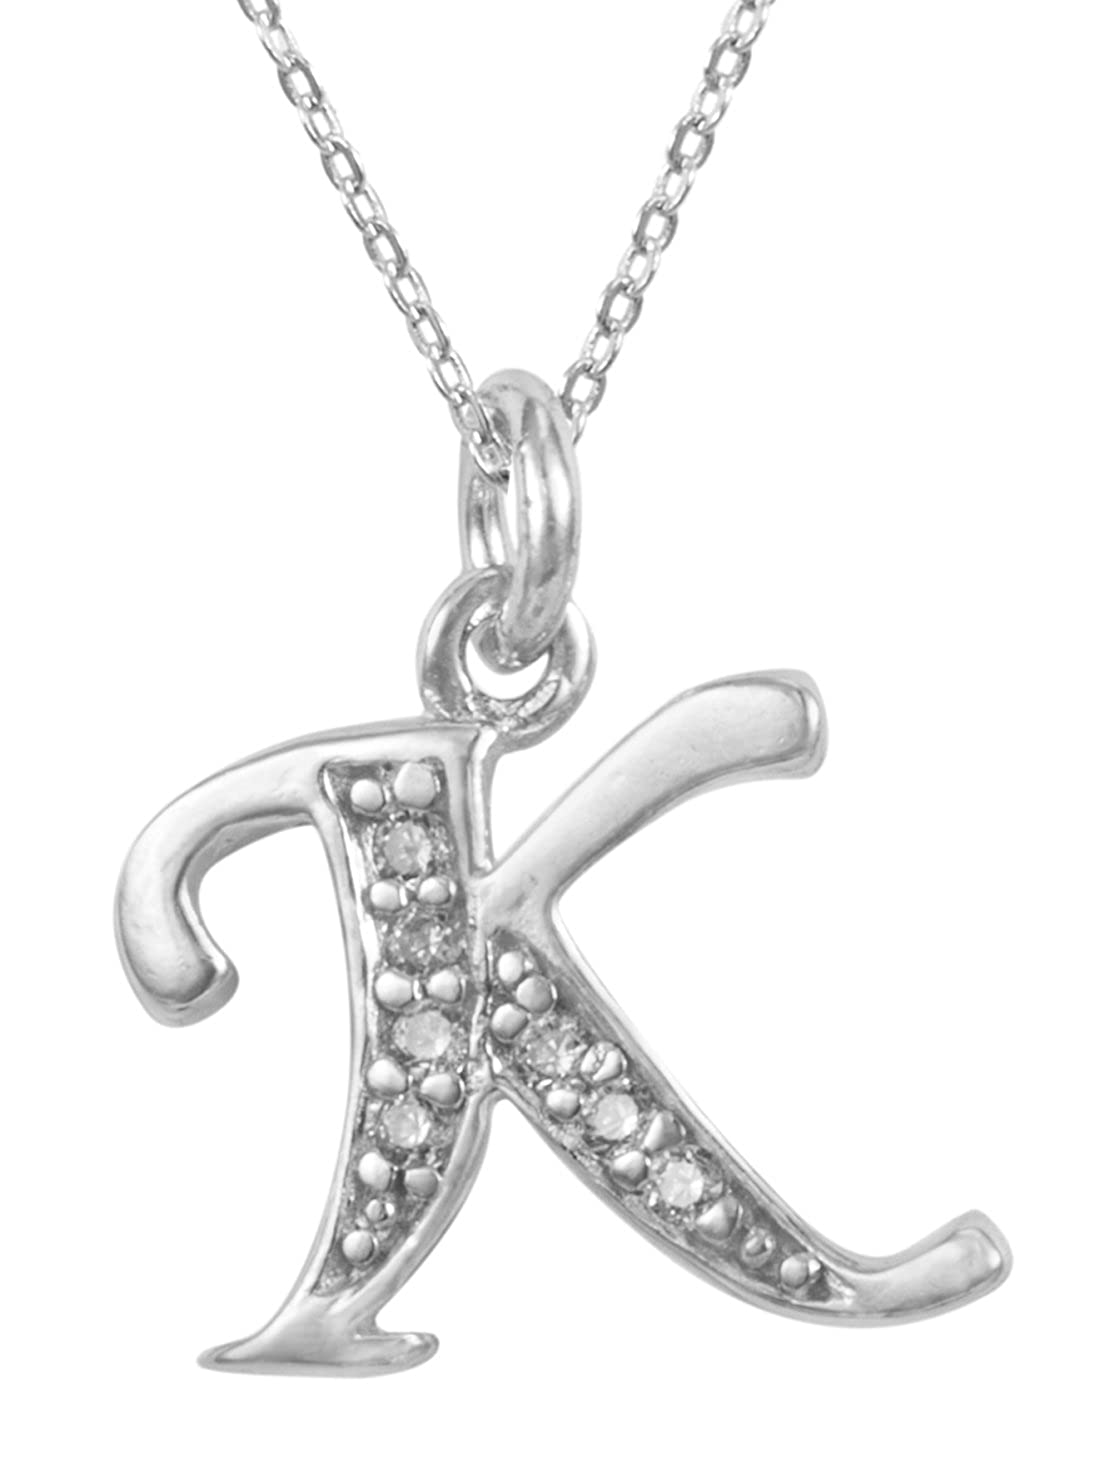 Adabele Sterling Silver Letter Pendant Necklace 18 Personalized Initial Necklace Anniversary Birthday Mothers Gift NK18